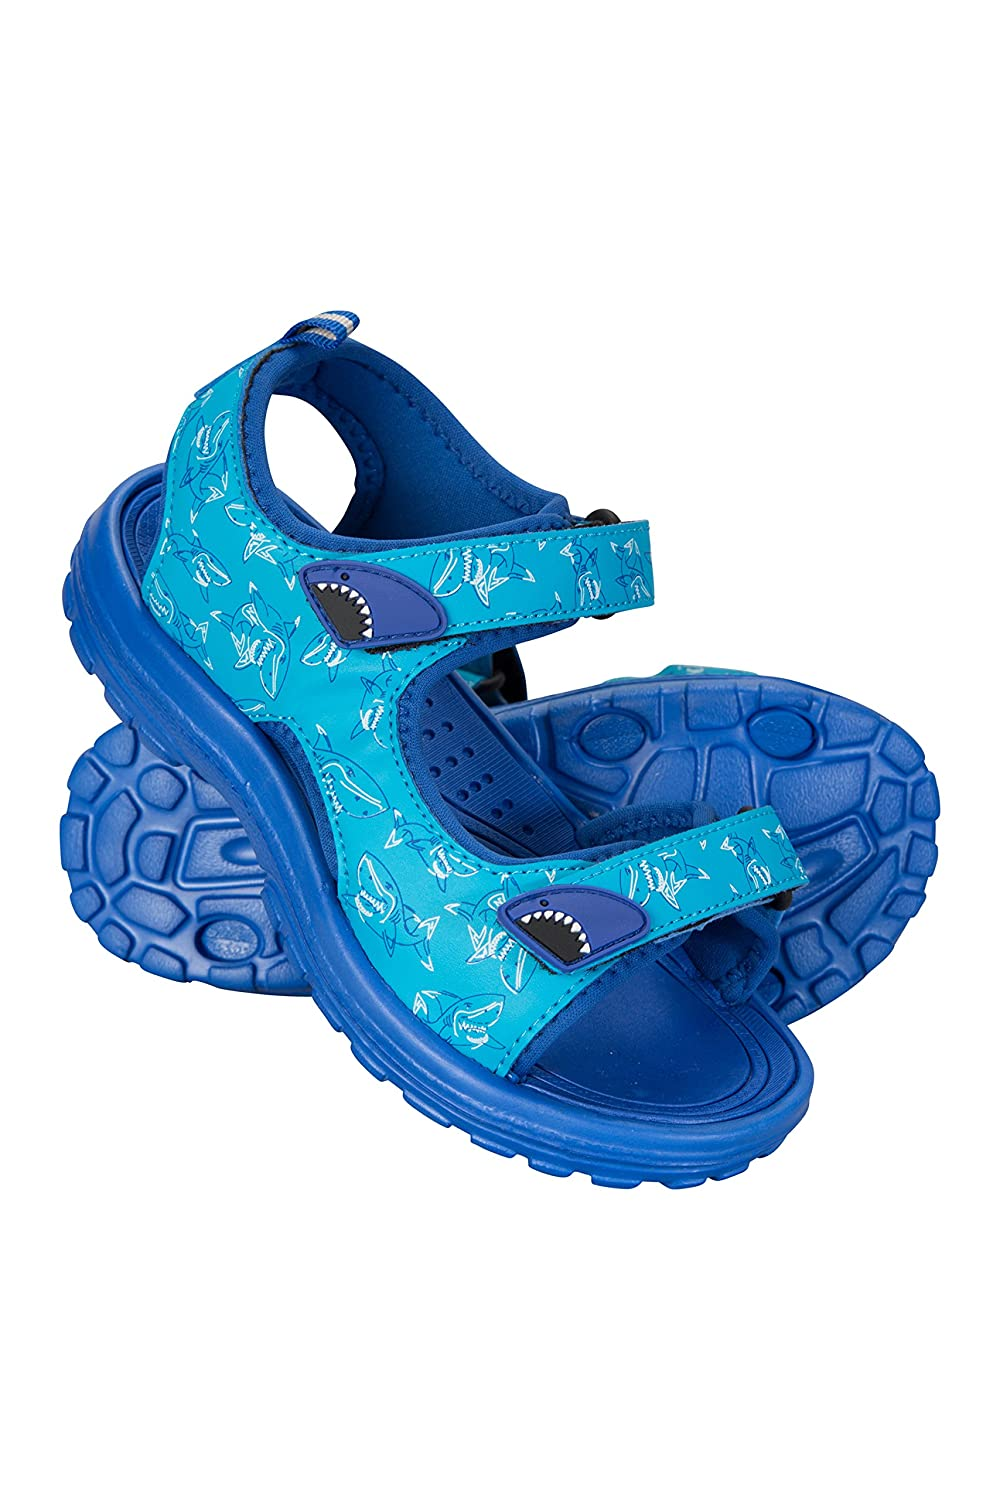 Mountain Warehouse Sand Boys Sandals - Durable Kids Sandal Shoes